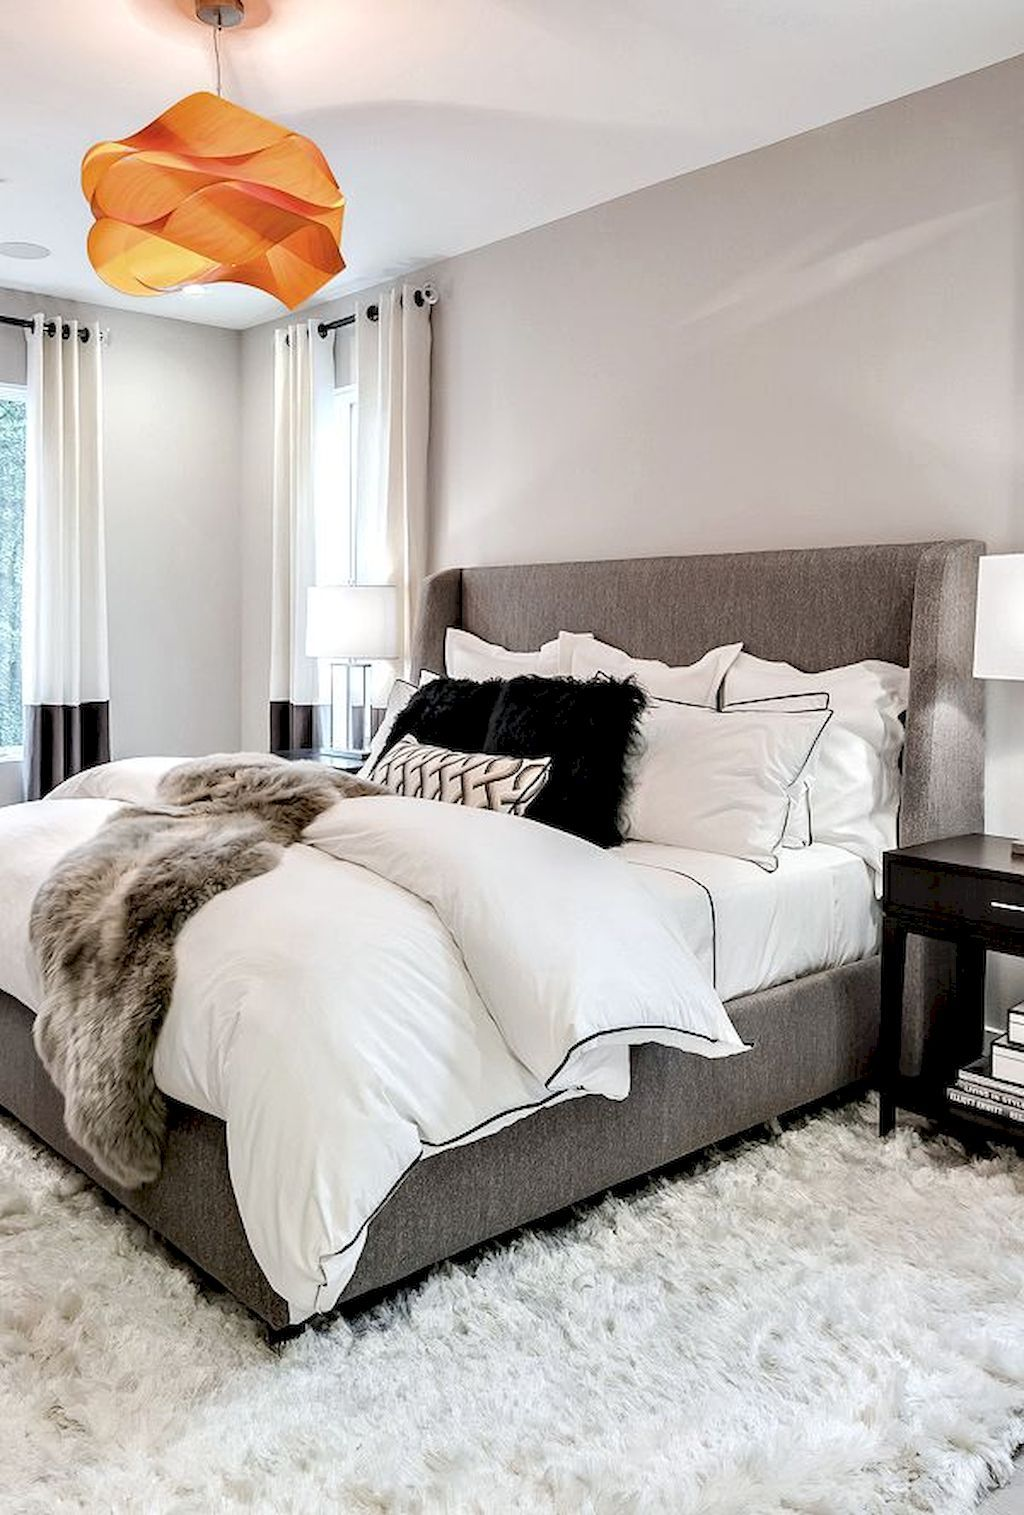 75 Gorgeous Master Bedroom Design Ideas | Apartments decorating ...